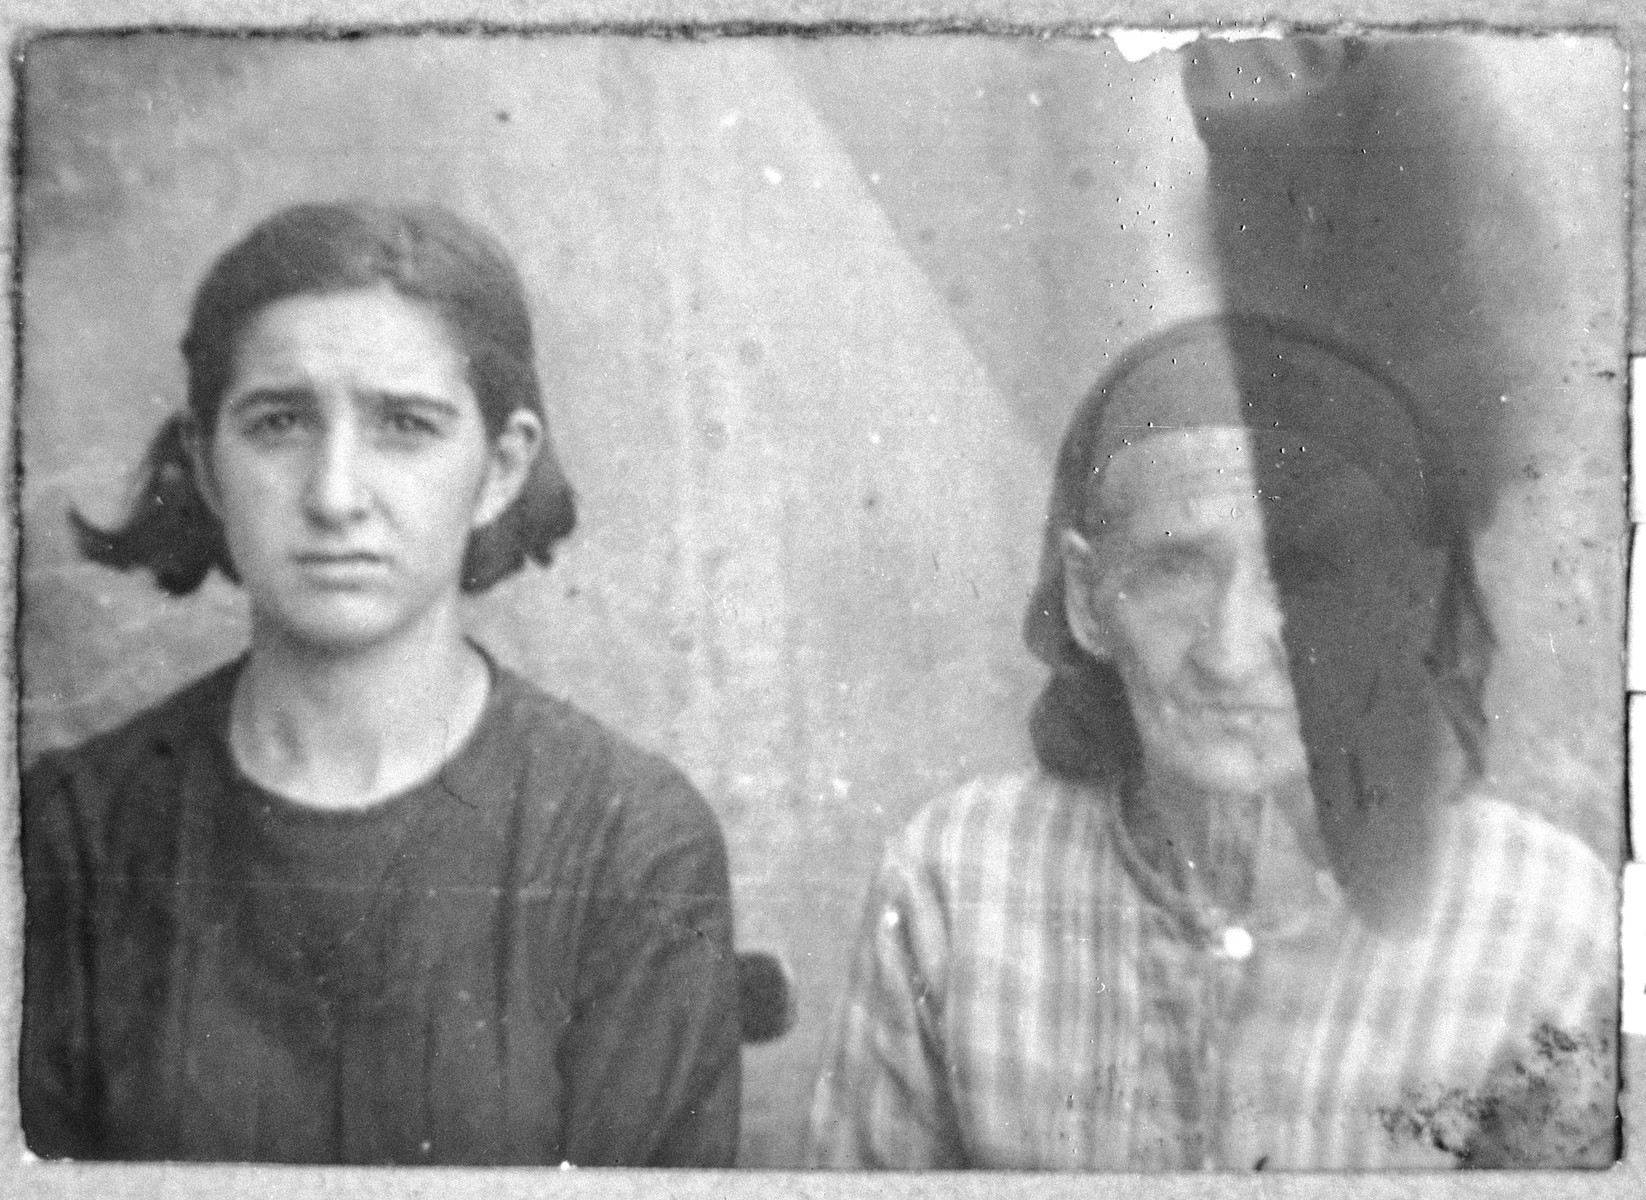 Portrait of Palomba Koen (left) and Bohora Pesso (right). Both lived at Drinska 119 in Bitola. Palomba, daughter of Bohor Koen, was a housemaid.